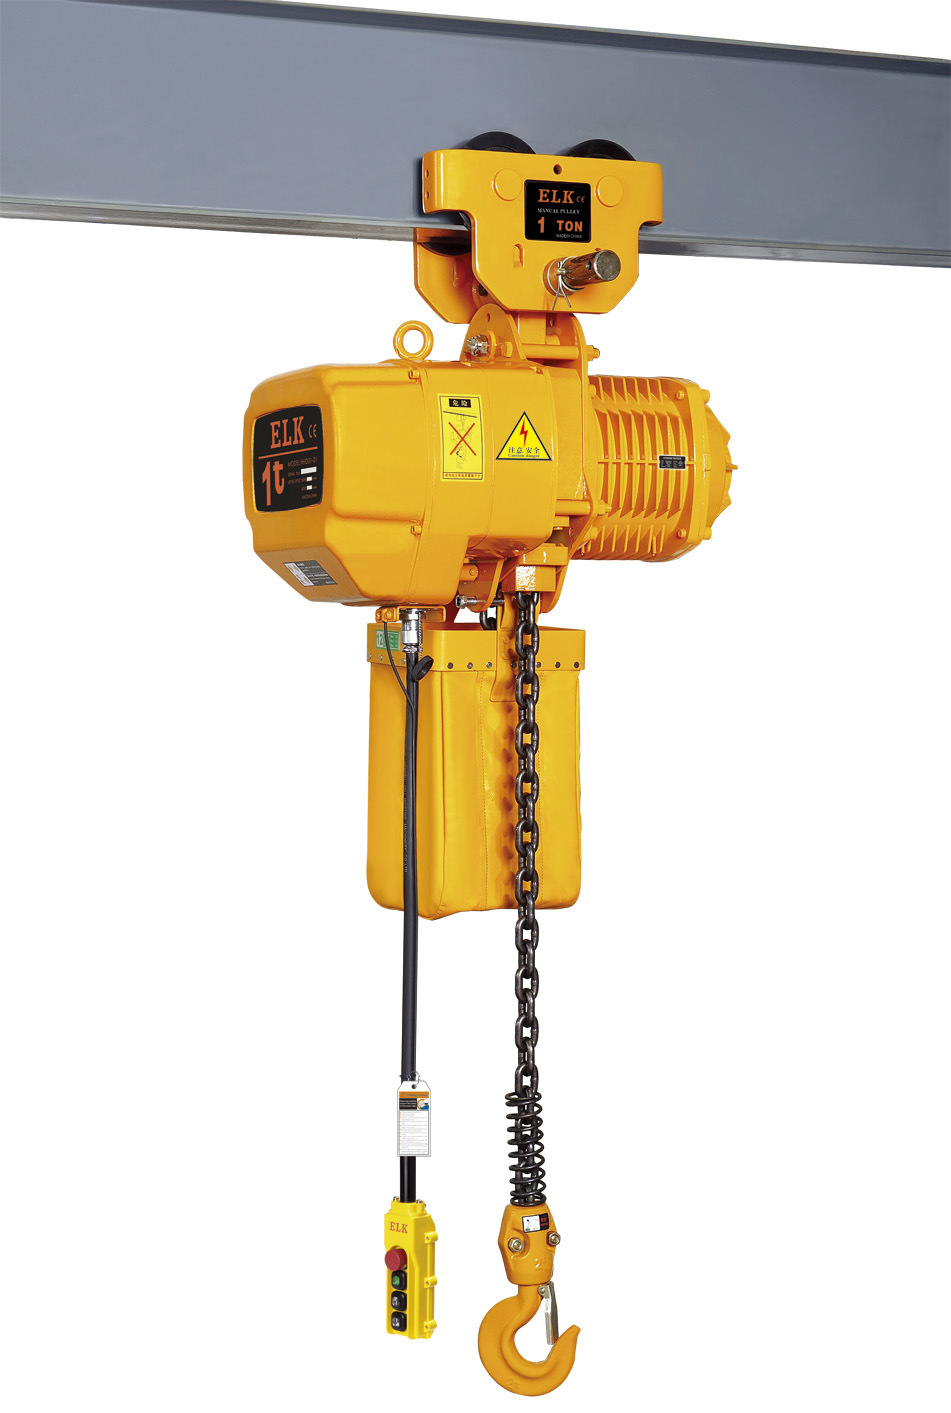 Hoist trolley bing images for 2 ton hoist with motorized trolley